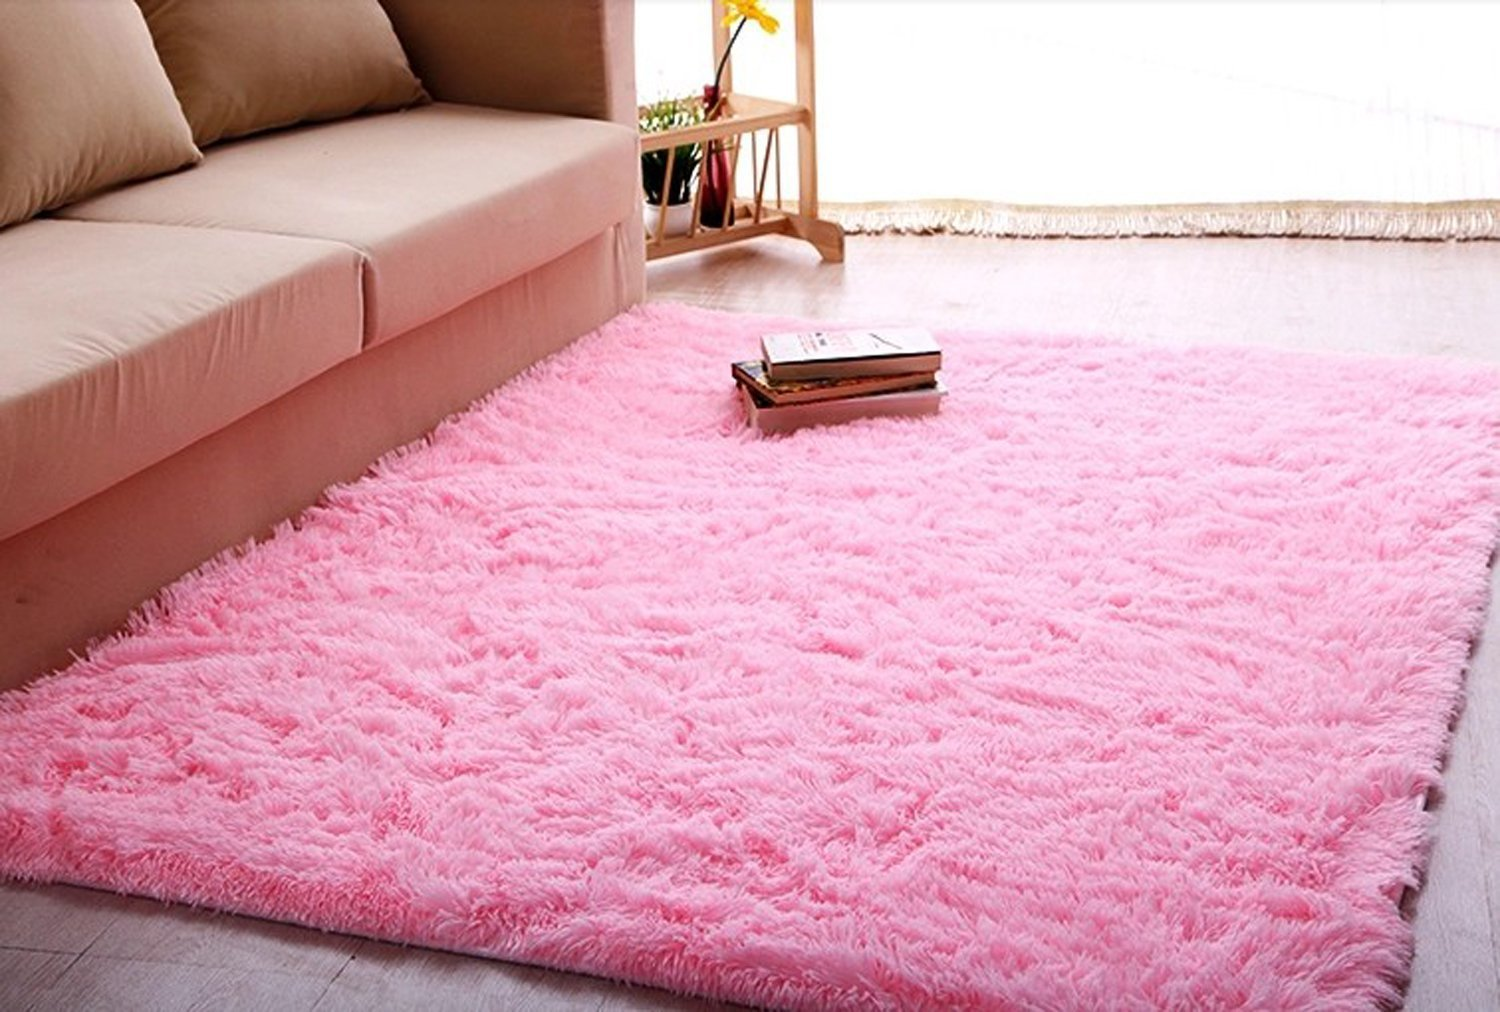 Ultra Soft 4.5 Cm Thick Indoor Morden Area Rugs Pads, New Arrival Fashion Color [Bedroom] [Livingroom] [Sitting-room] [Rugs] [Blanket] [Footcloth] for Home Decorate. Size: 4 Feet X 5 Feet (Pink) Forever Lover